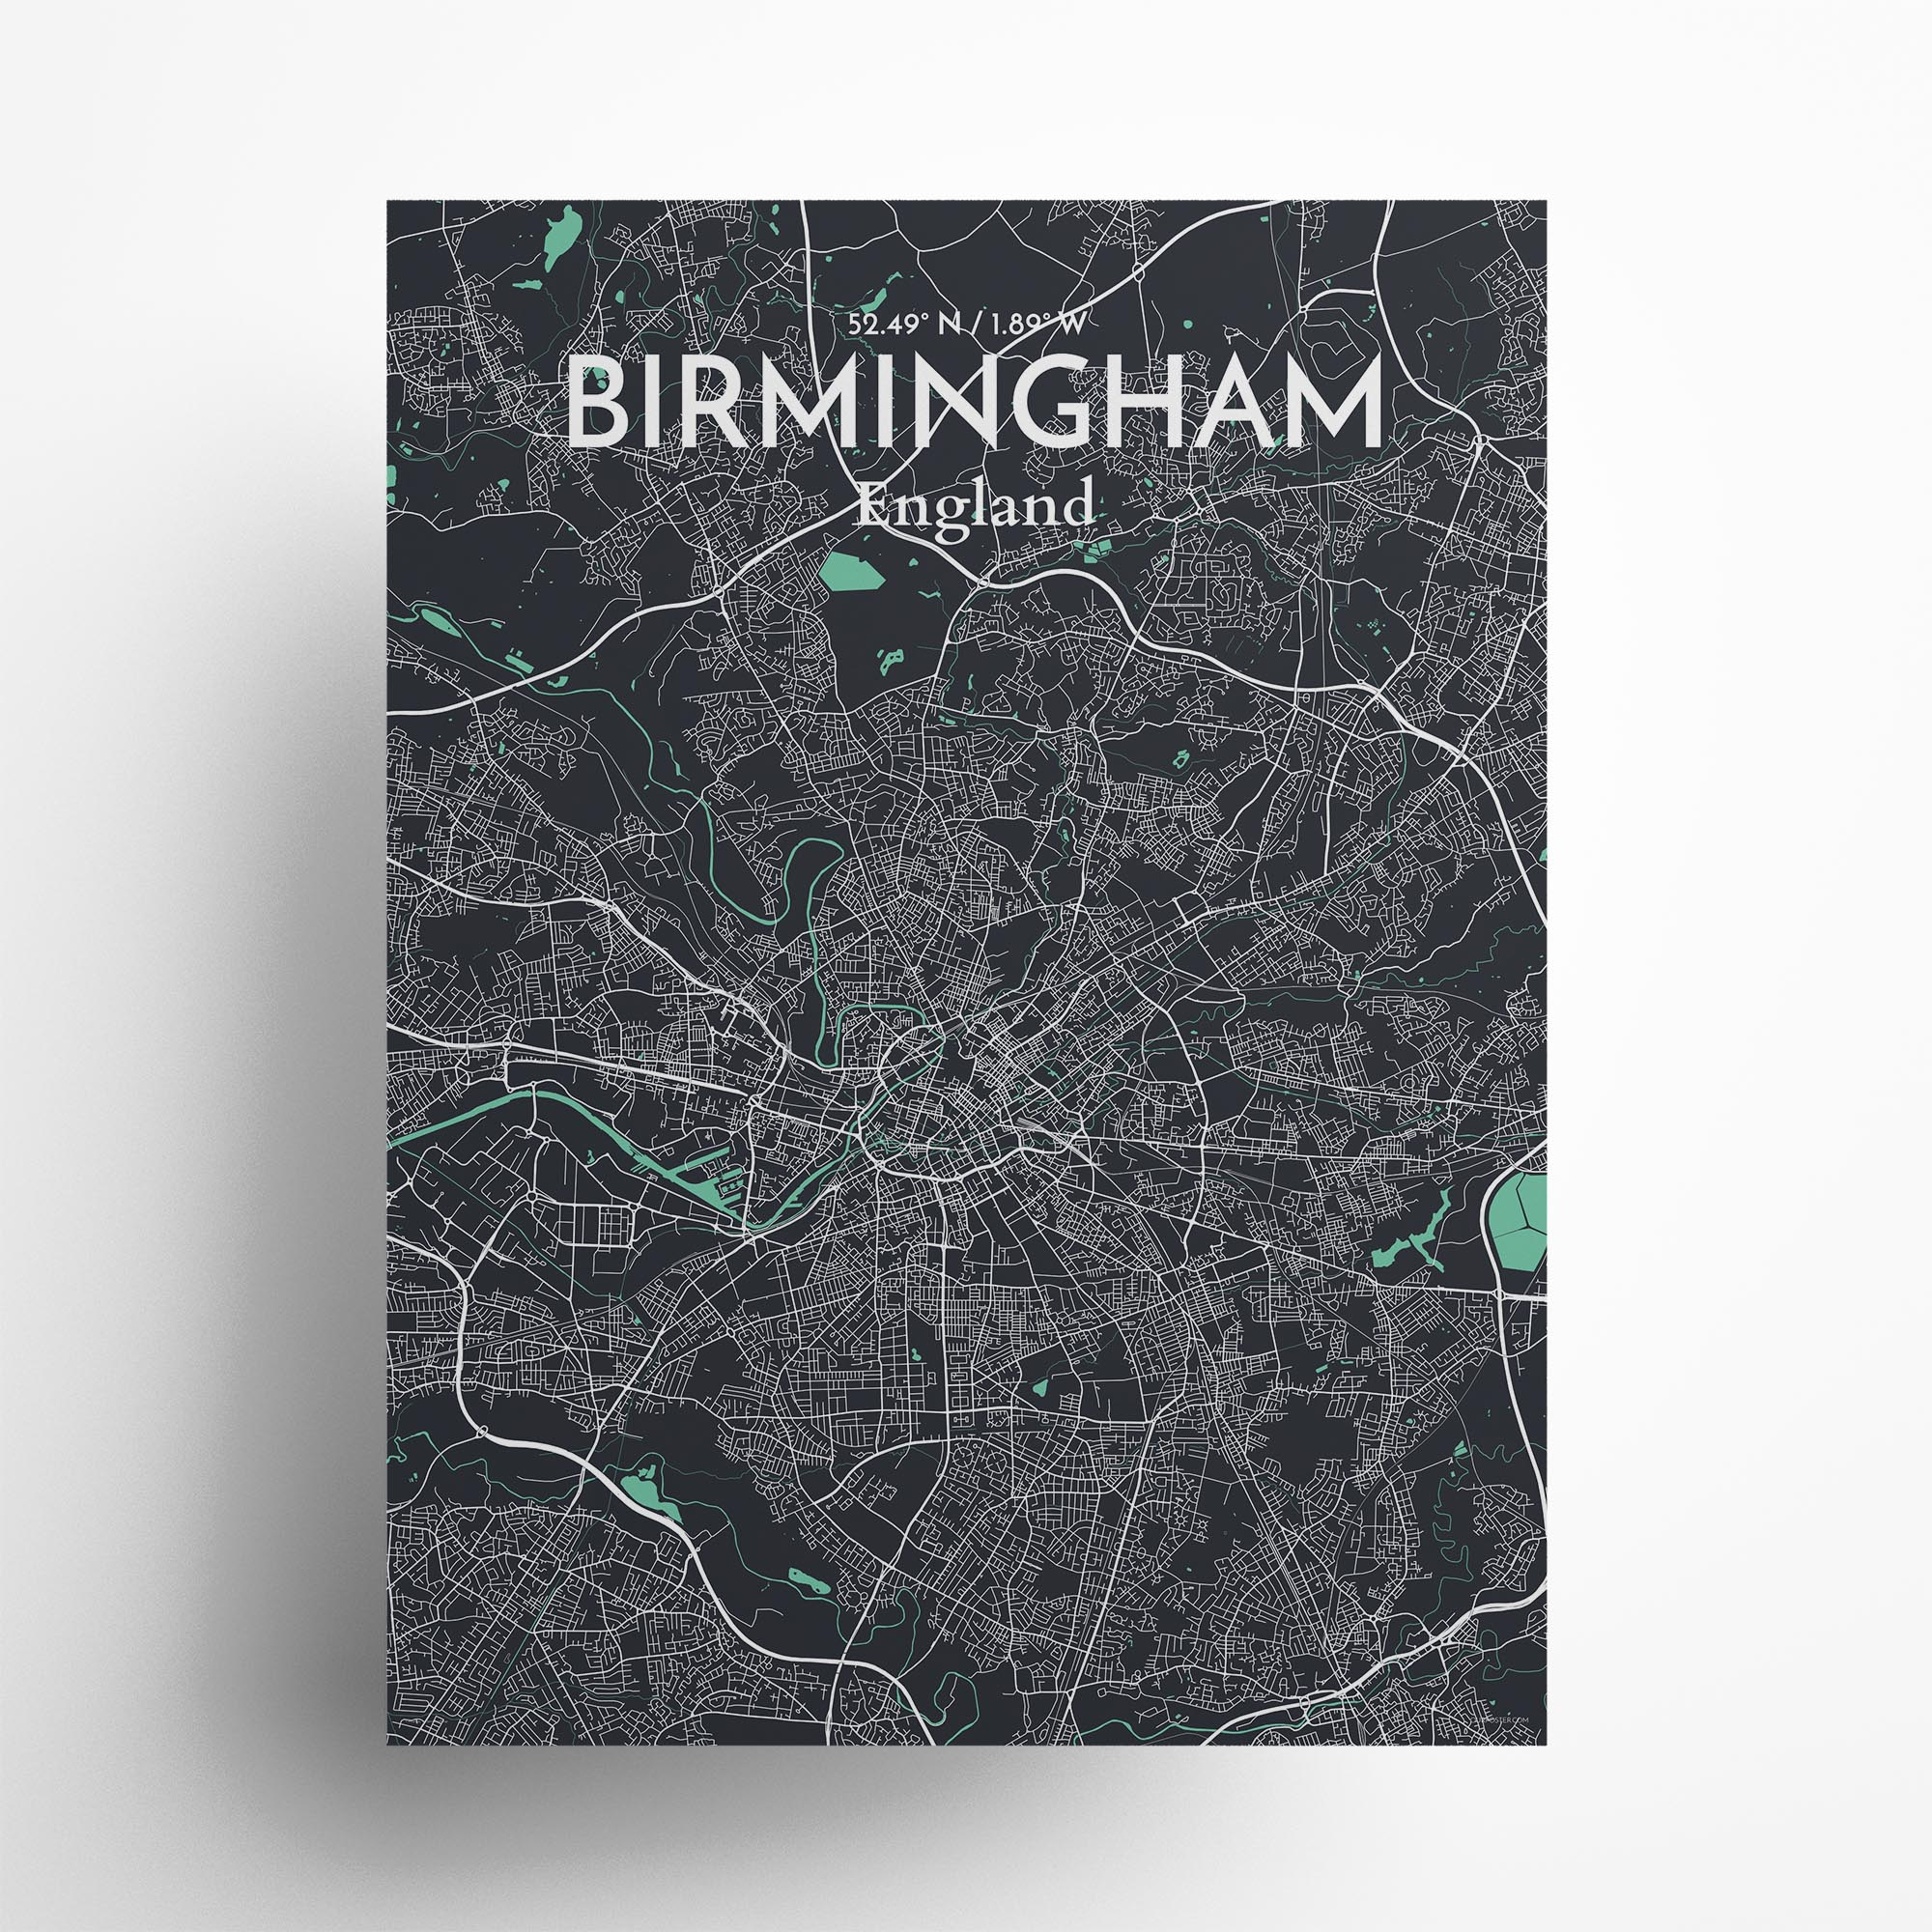 "Birmingham city map poster in Dream of size 18"" x 24"""